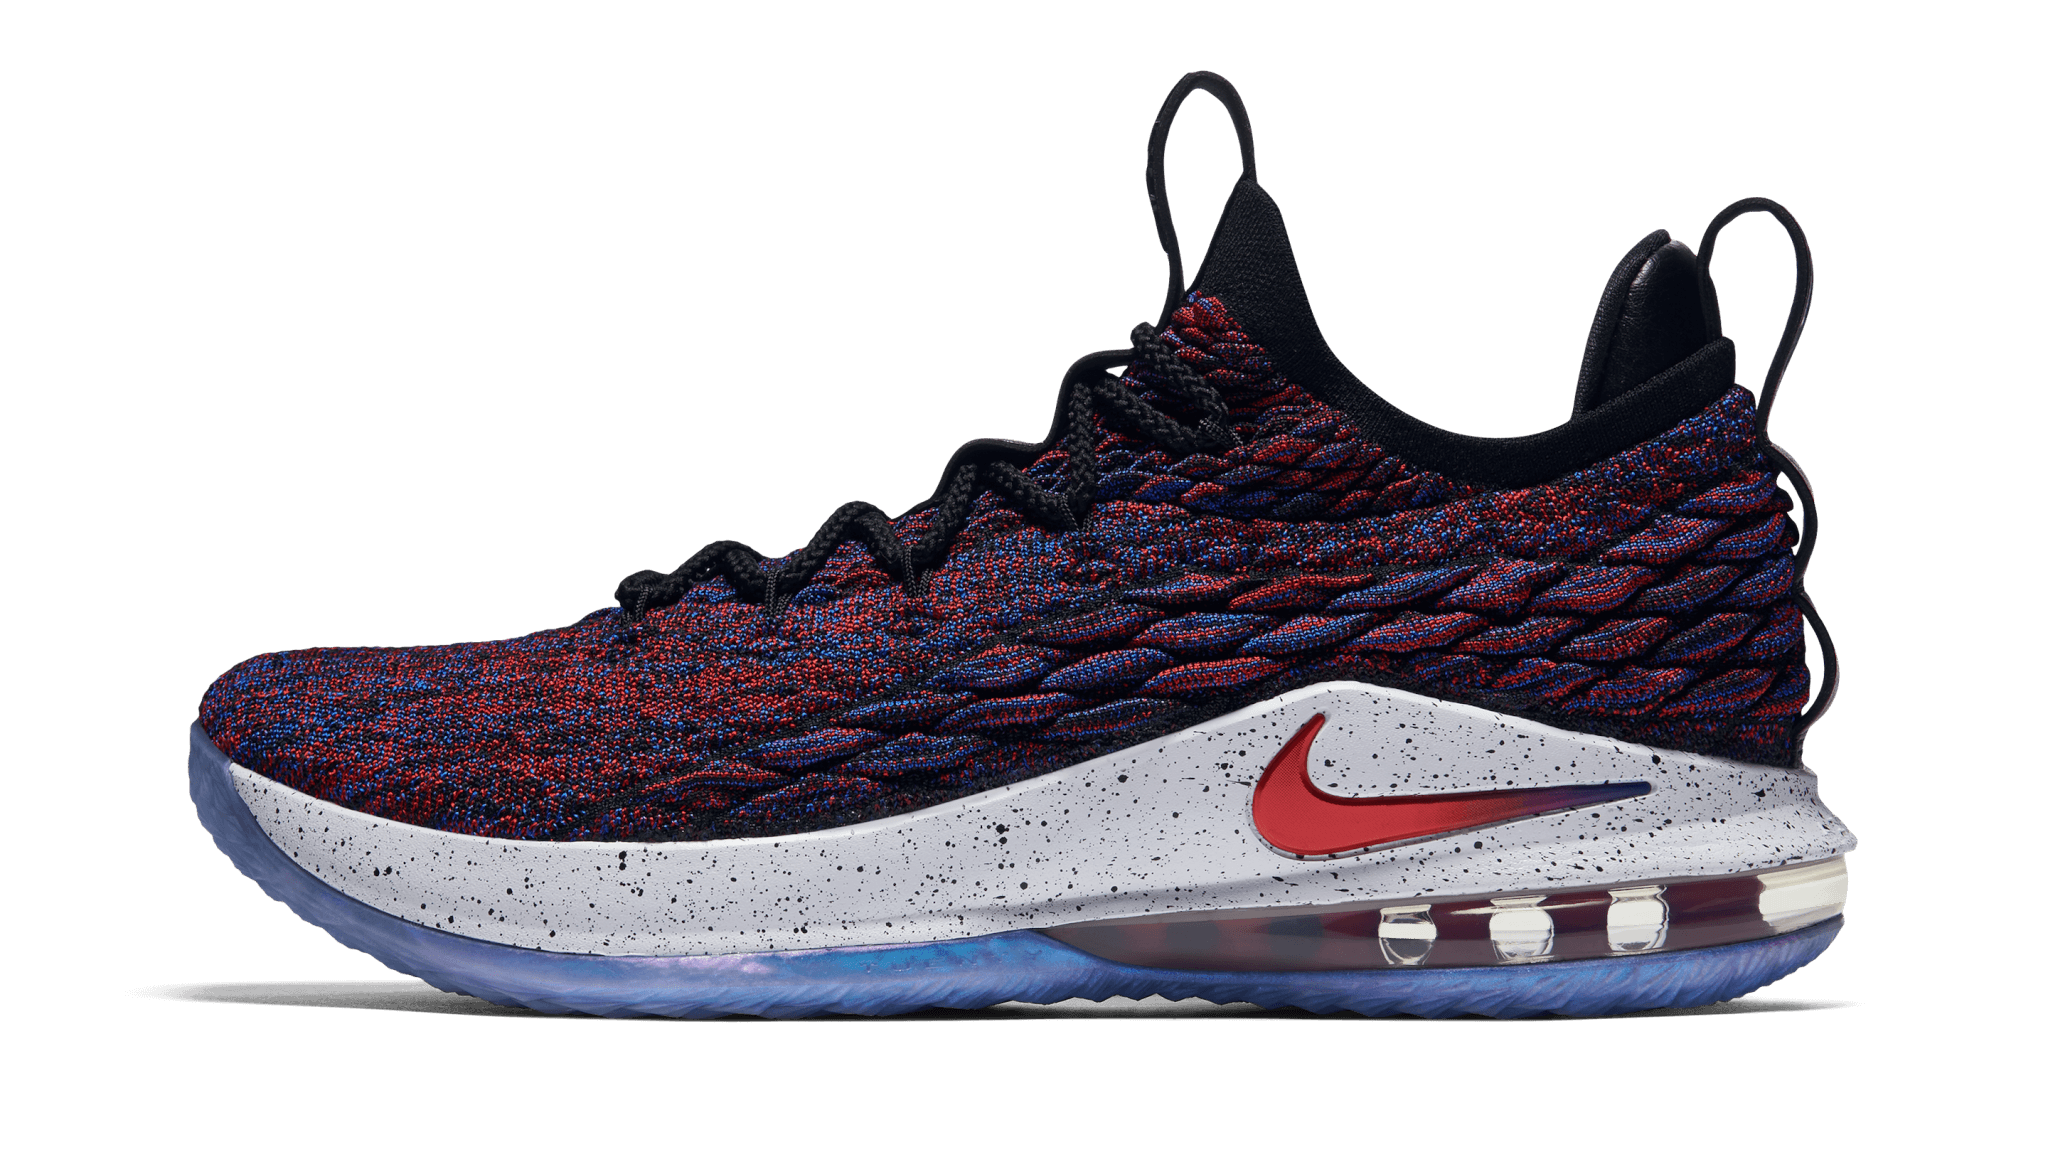 e42c6d05b0d Nike Lebron 15 Low Performance Review